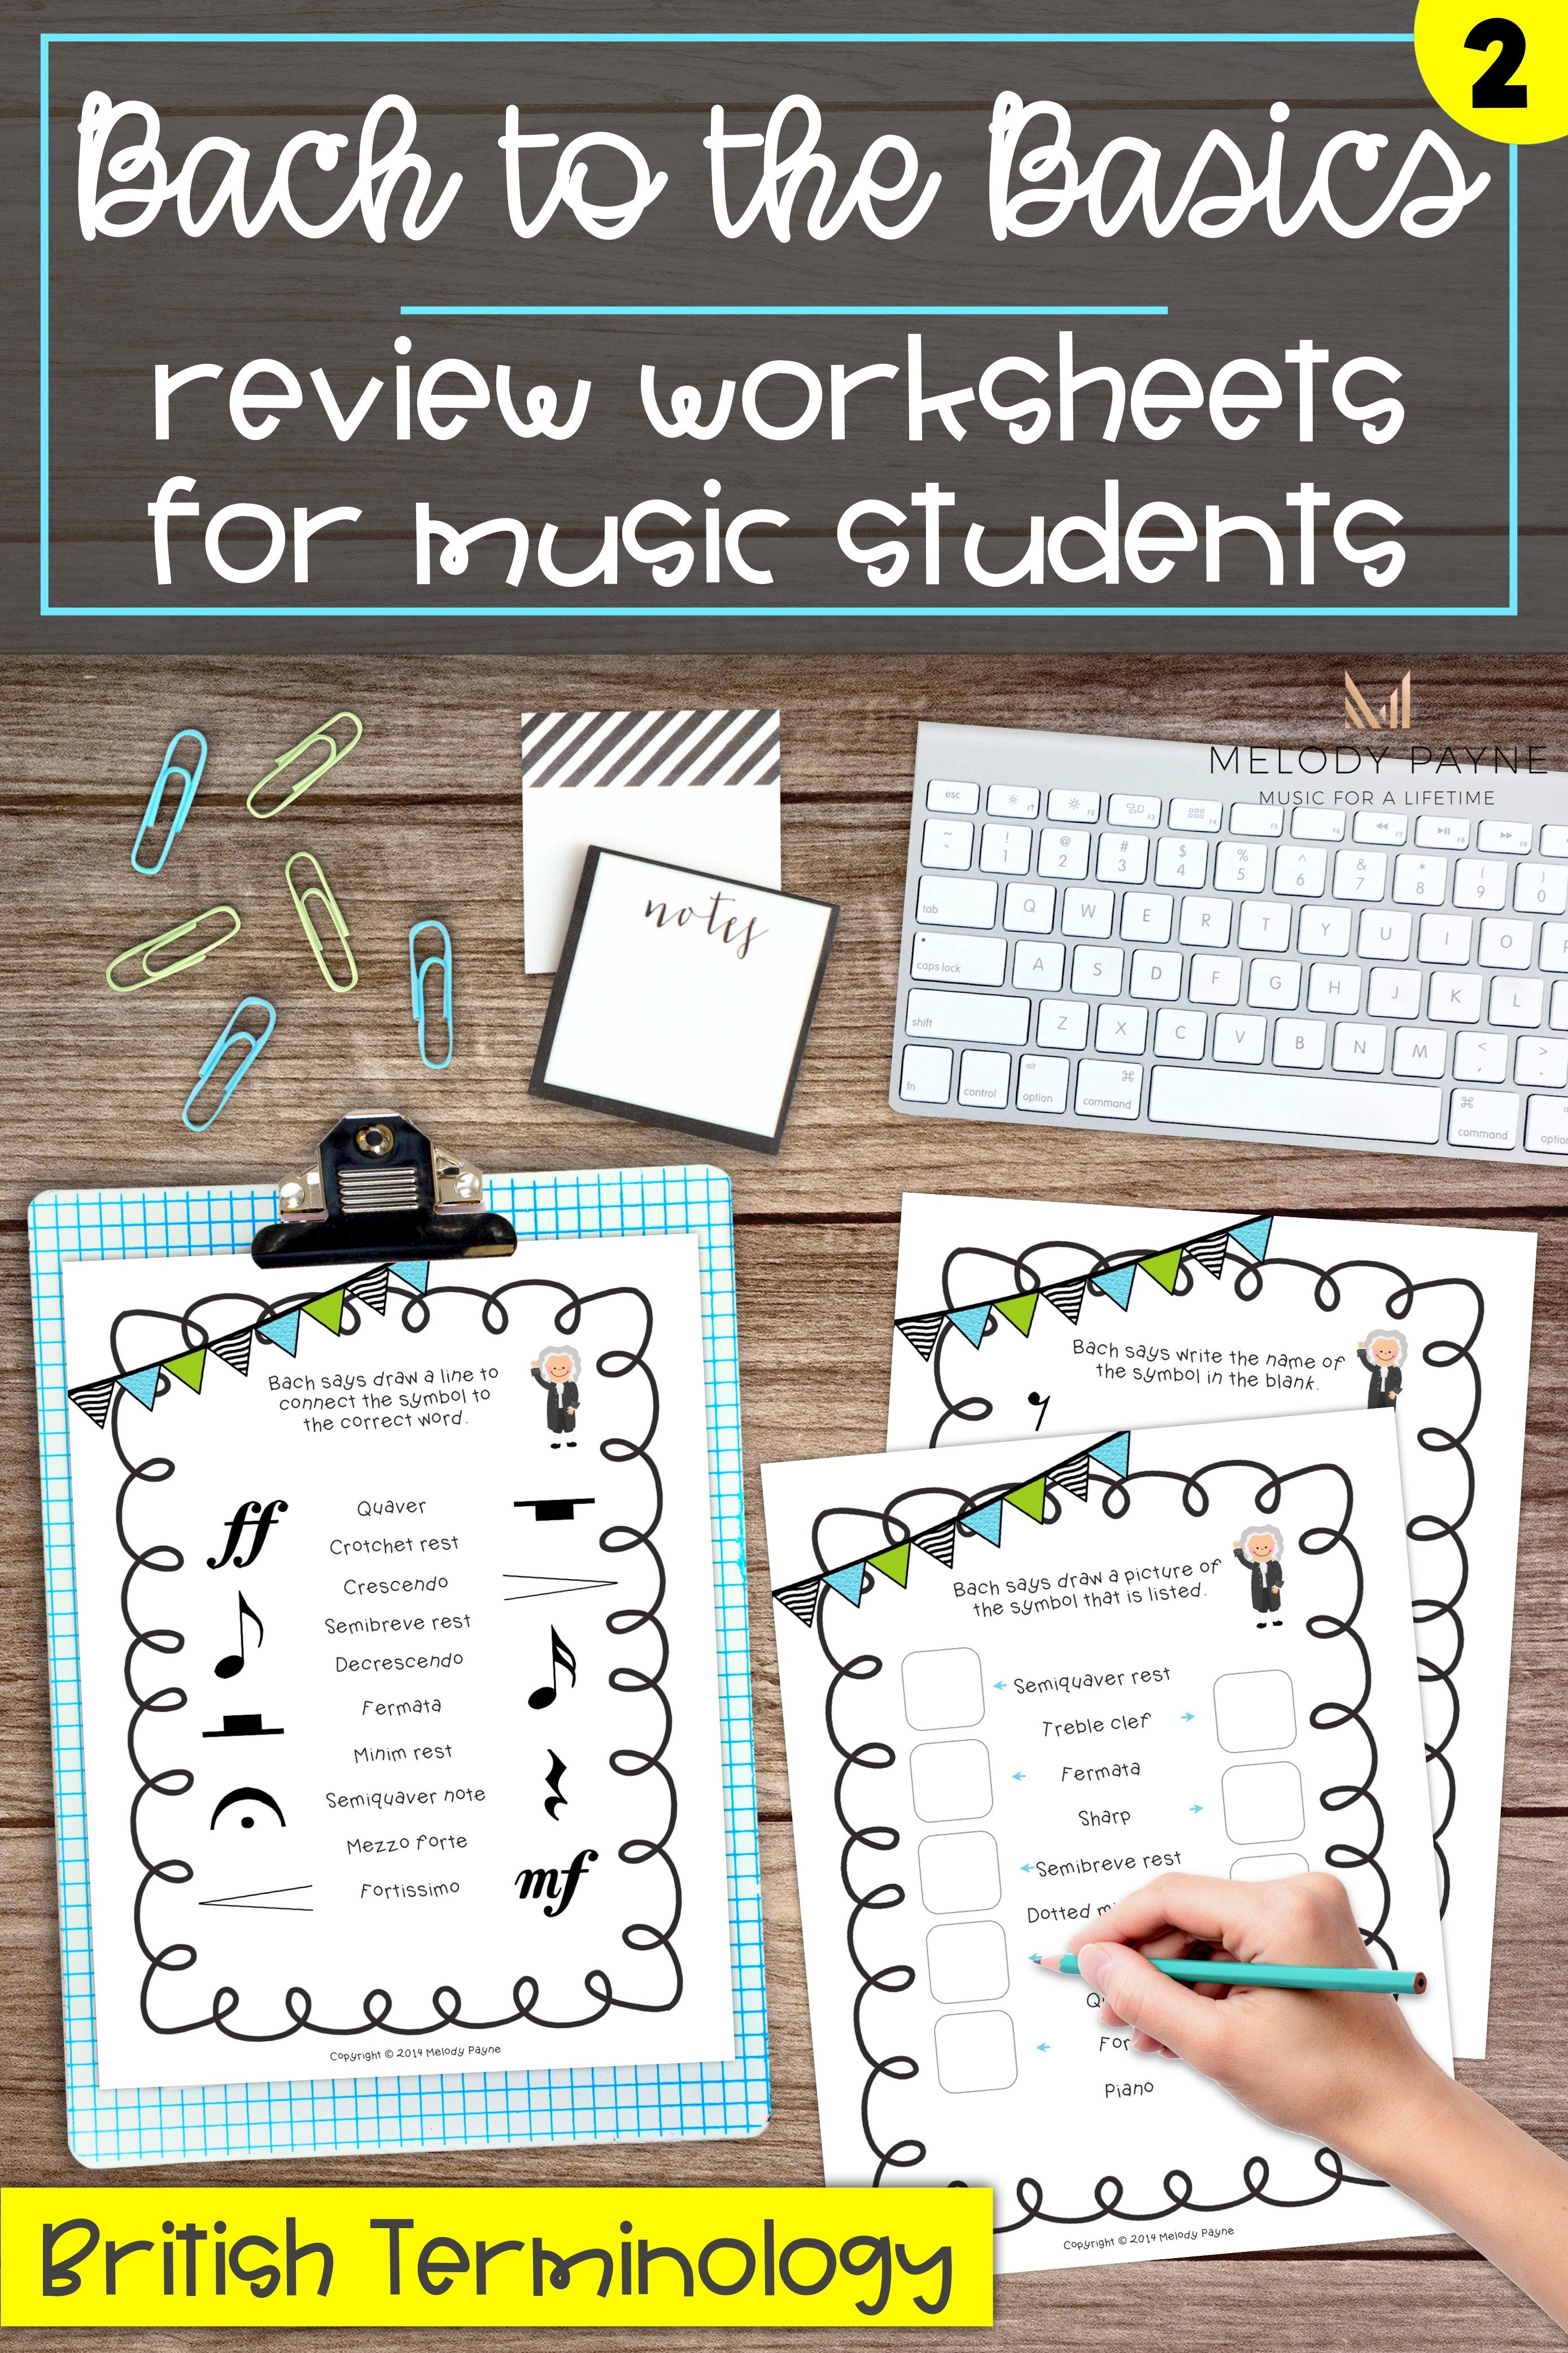 Bach To The Basics 2 Gives Students A Fun Way To Review